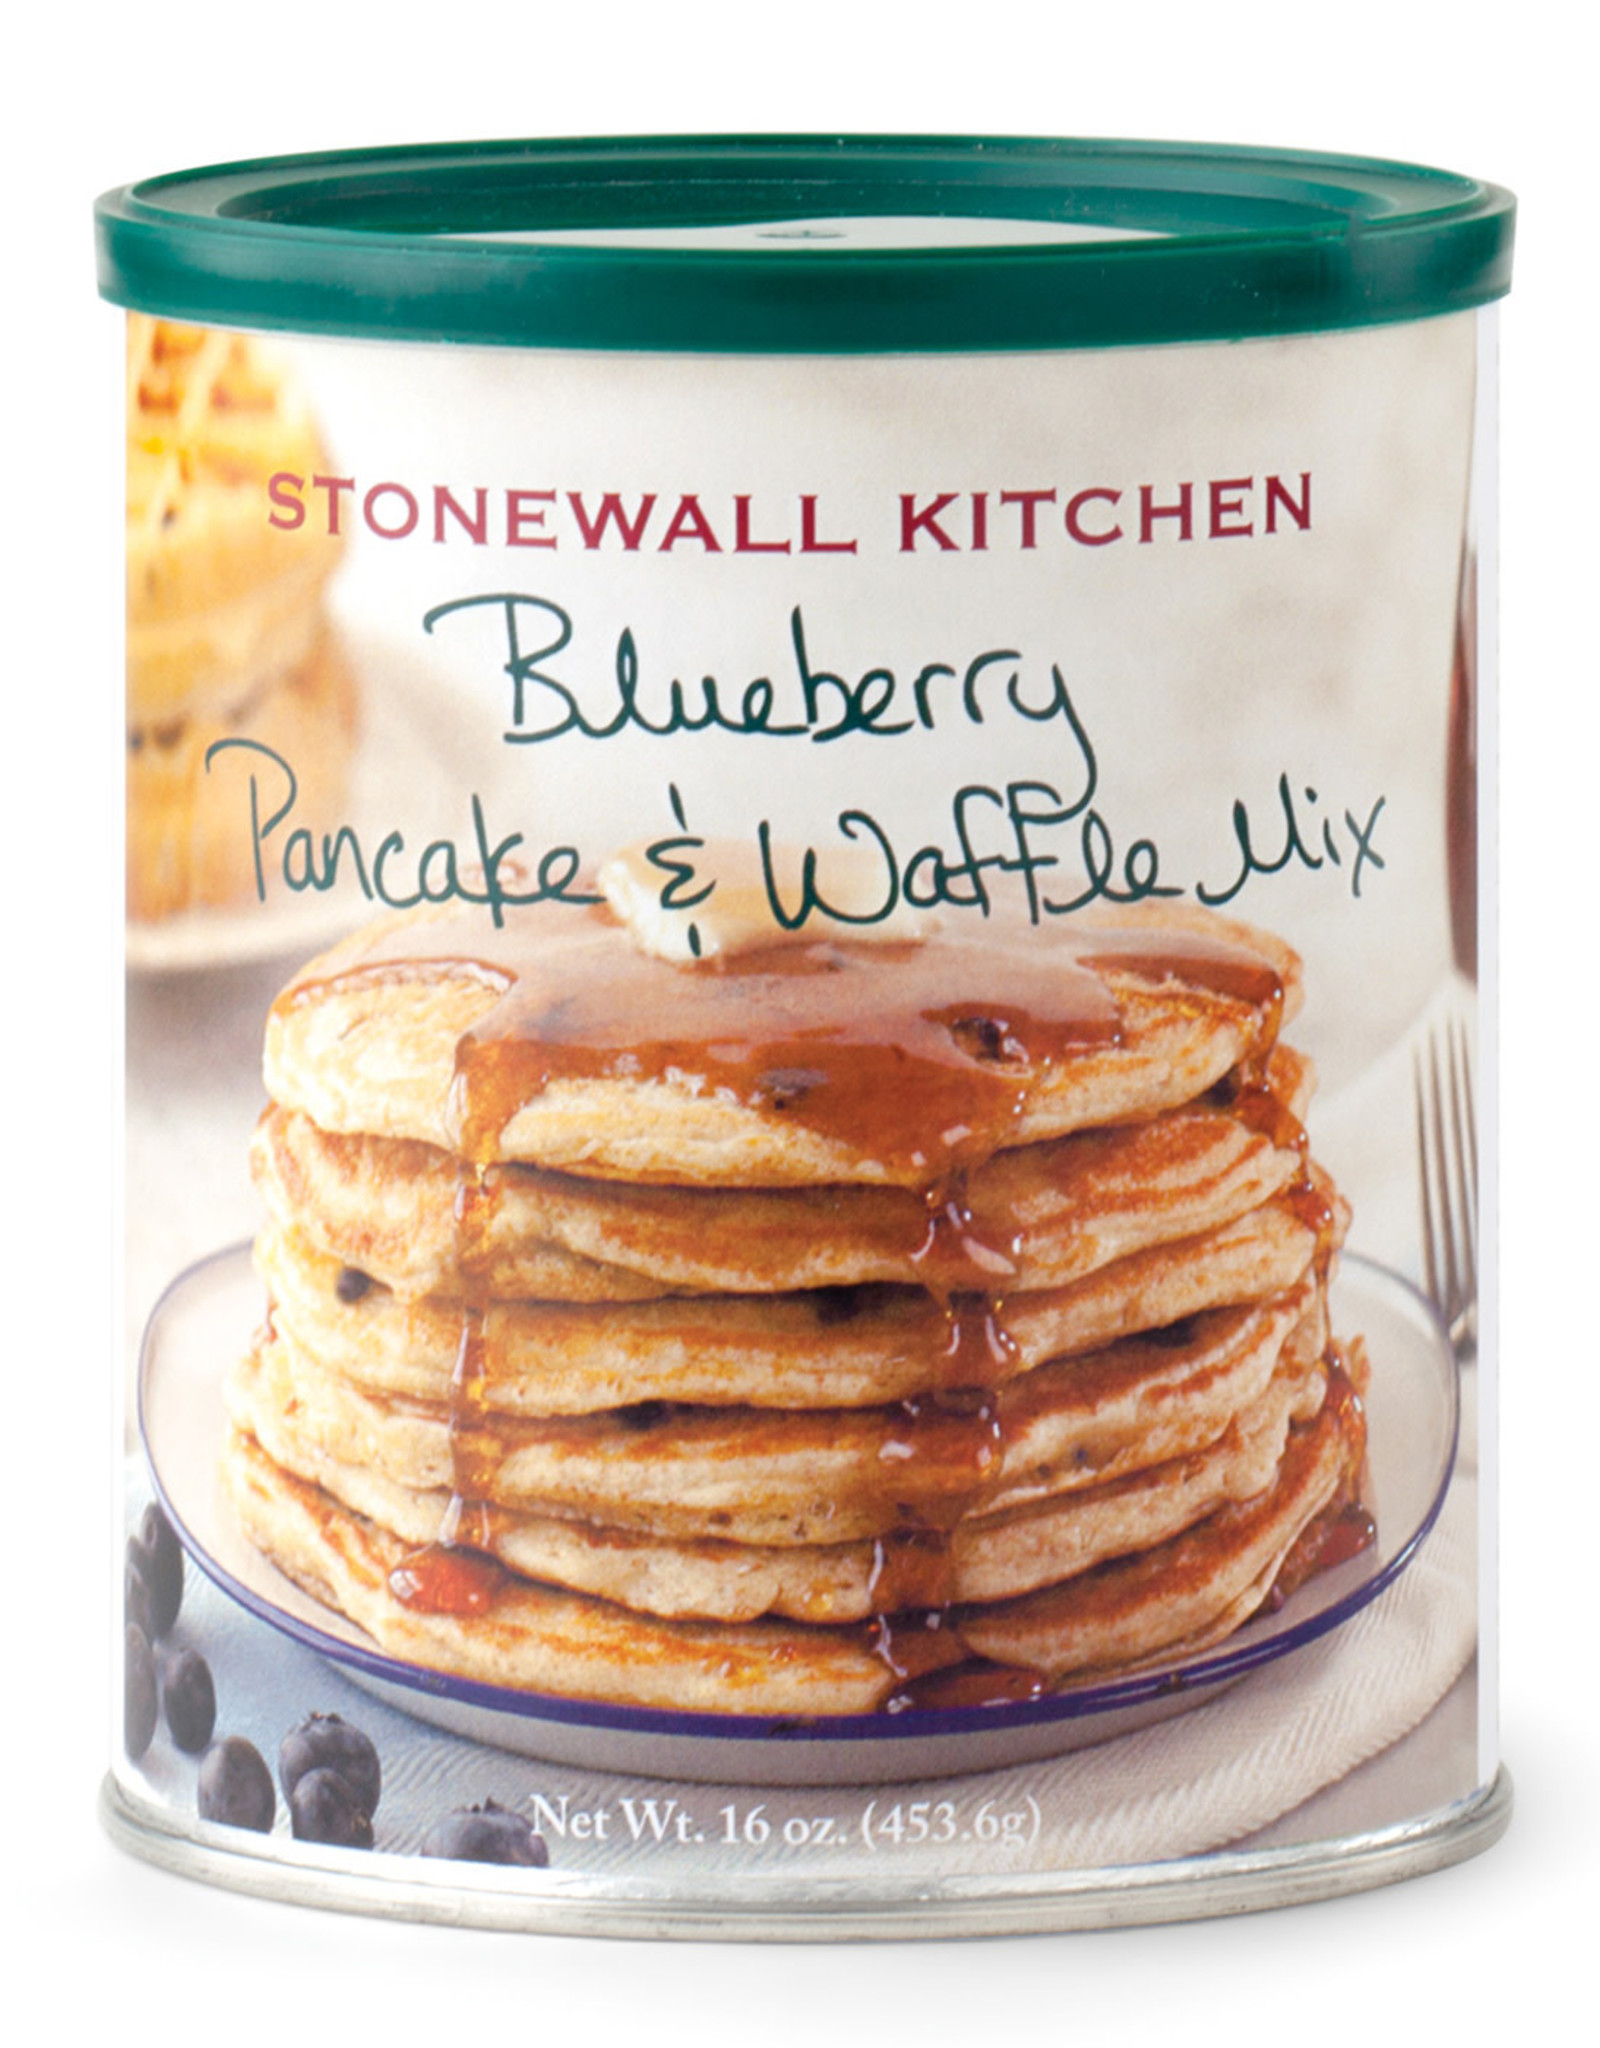 Stonewall Kitchen Blueberry Pancake & Waffle Mix, 16 oz Can